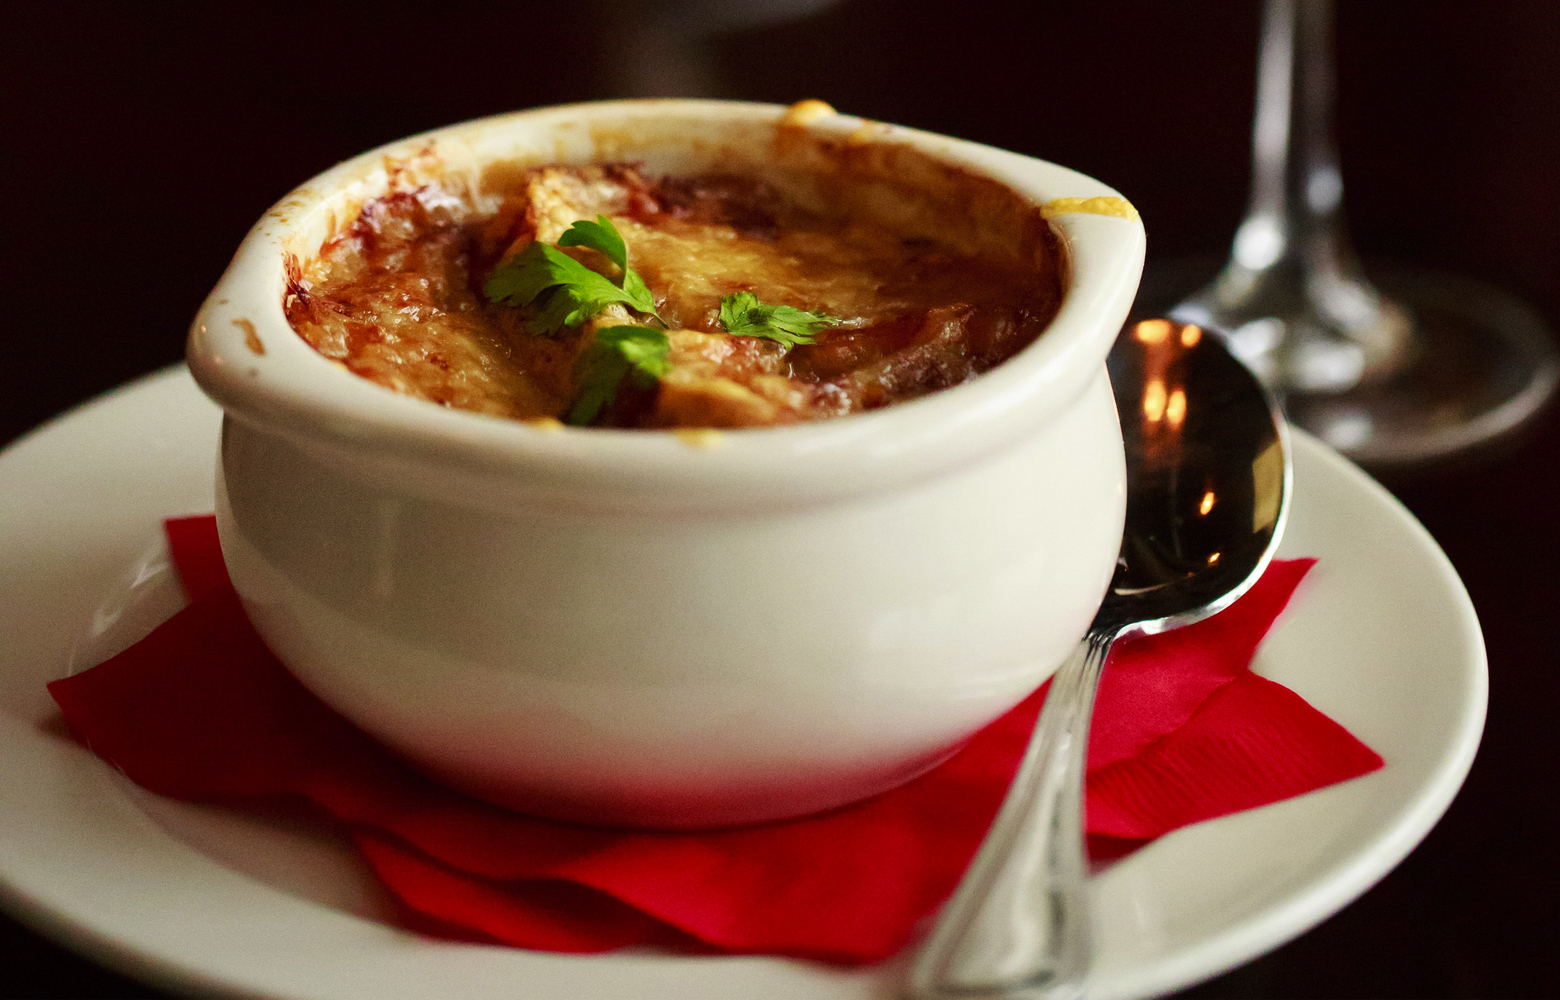 French Onion soup, with Caramelized onion, rich beef broth, crostini and Gruyere, sells for $9 at Maree Bistro & Bar, in West Seattle.